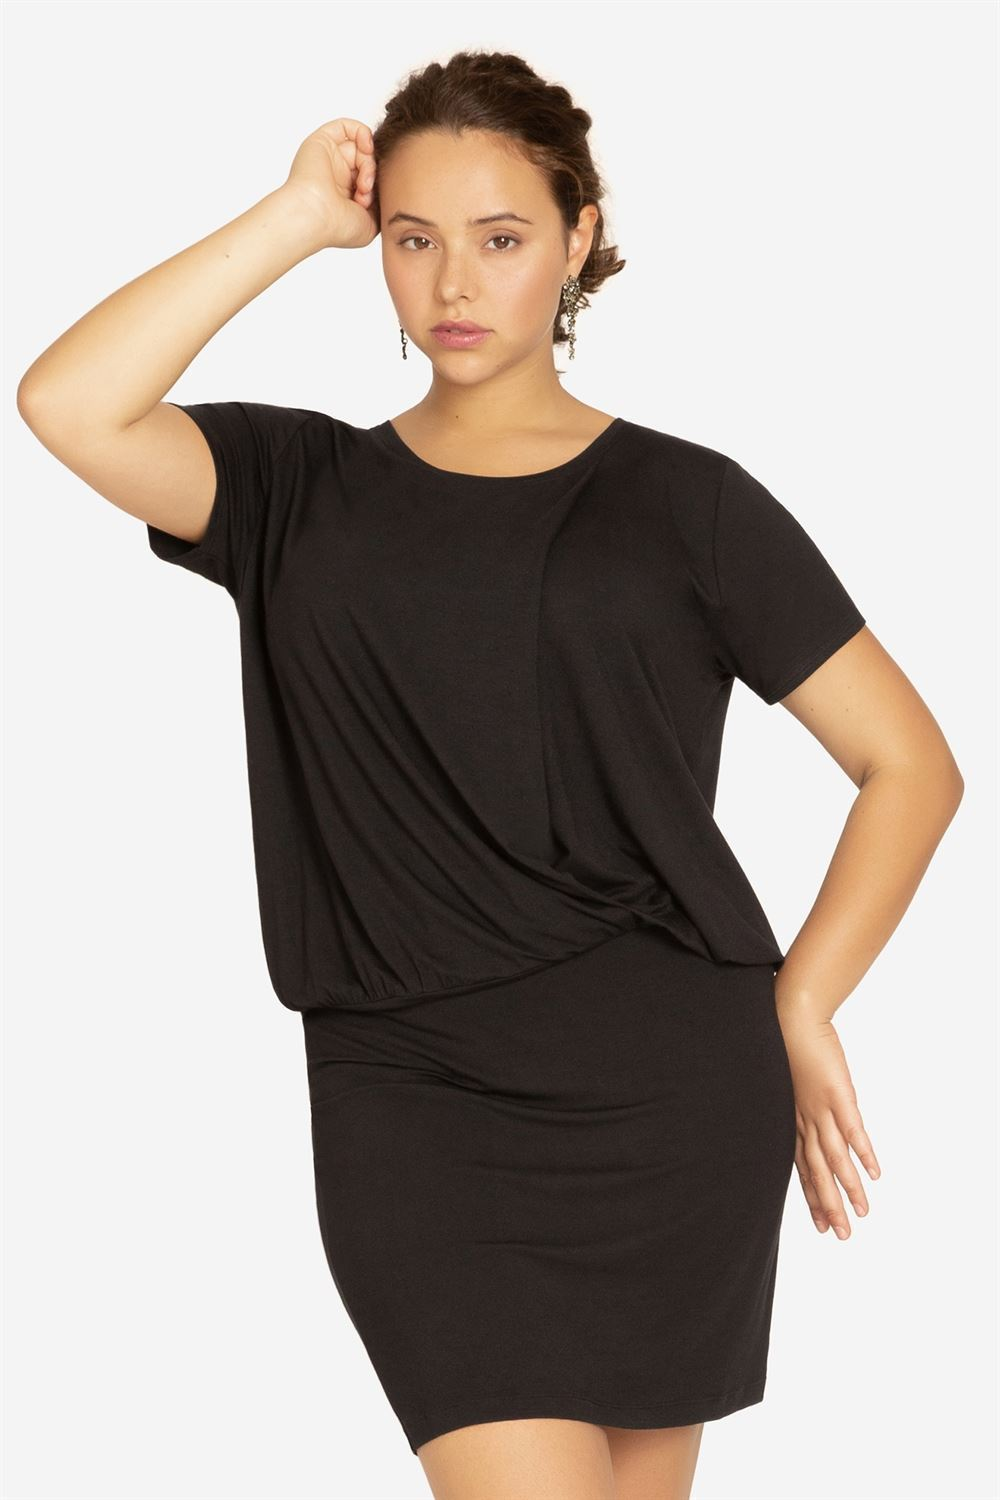 Black nursing dress with loose top and tight skirt - plus size